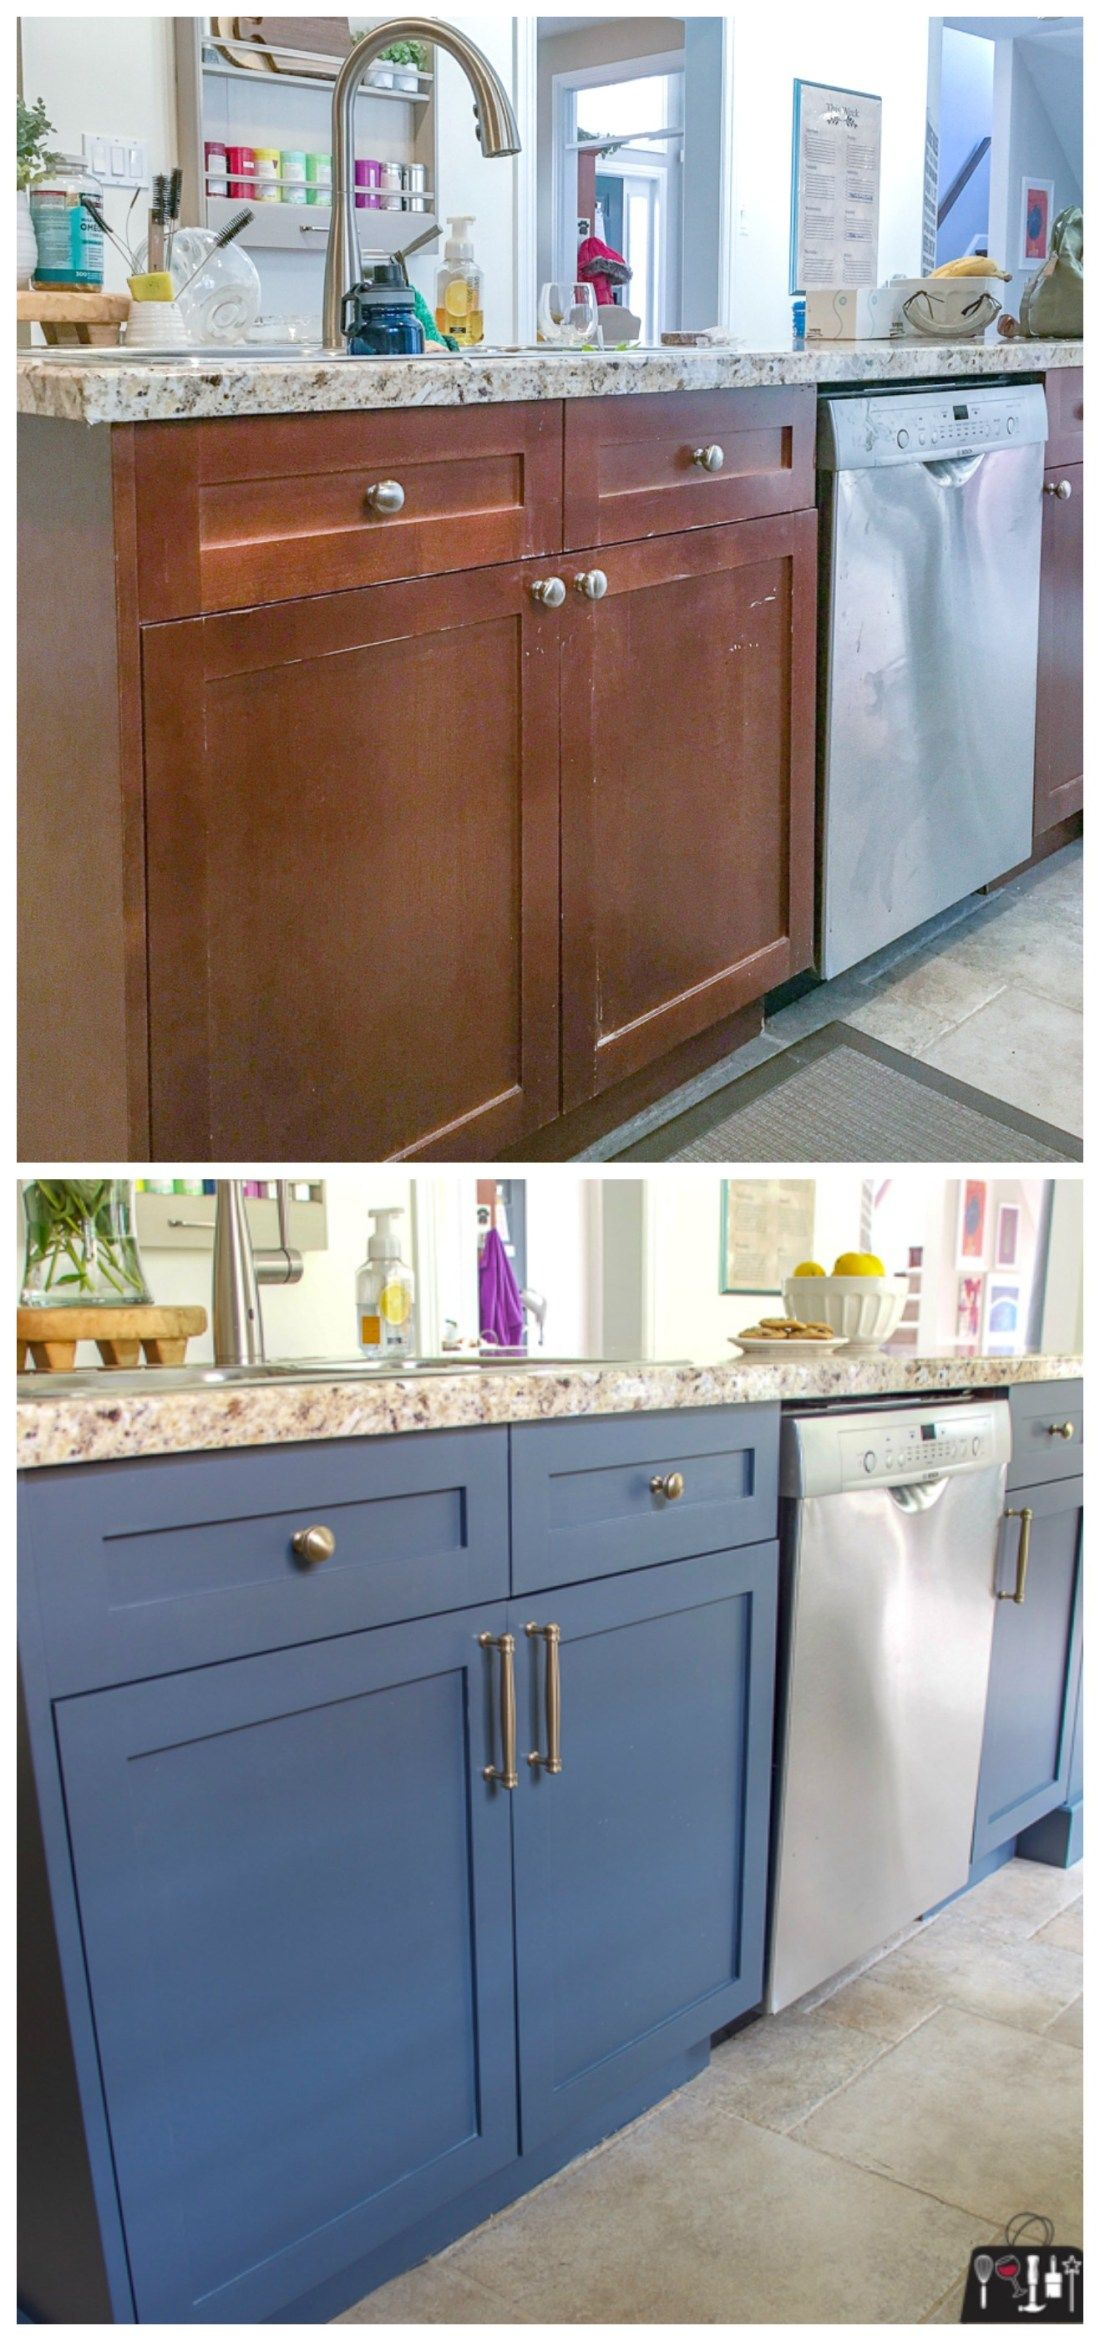 Kitchen Makeover on a Budget - Budget kitchen makeover, Kitchen diy makeover, Kitchen renovation, Painting kitchen cabinets, Kitchen cabinets makeover, Kitchen on a budget - Craving a new kitchen but a remodel or overhaul isn't in the budget  Join the club my friends  but check out the stunning kitchen makeover I did with just a few hours work, a RustOleum Cabinet Transformation Kit and some stunning new hardware!